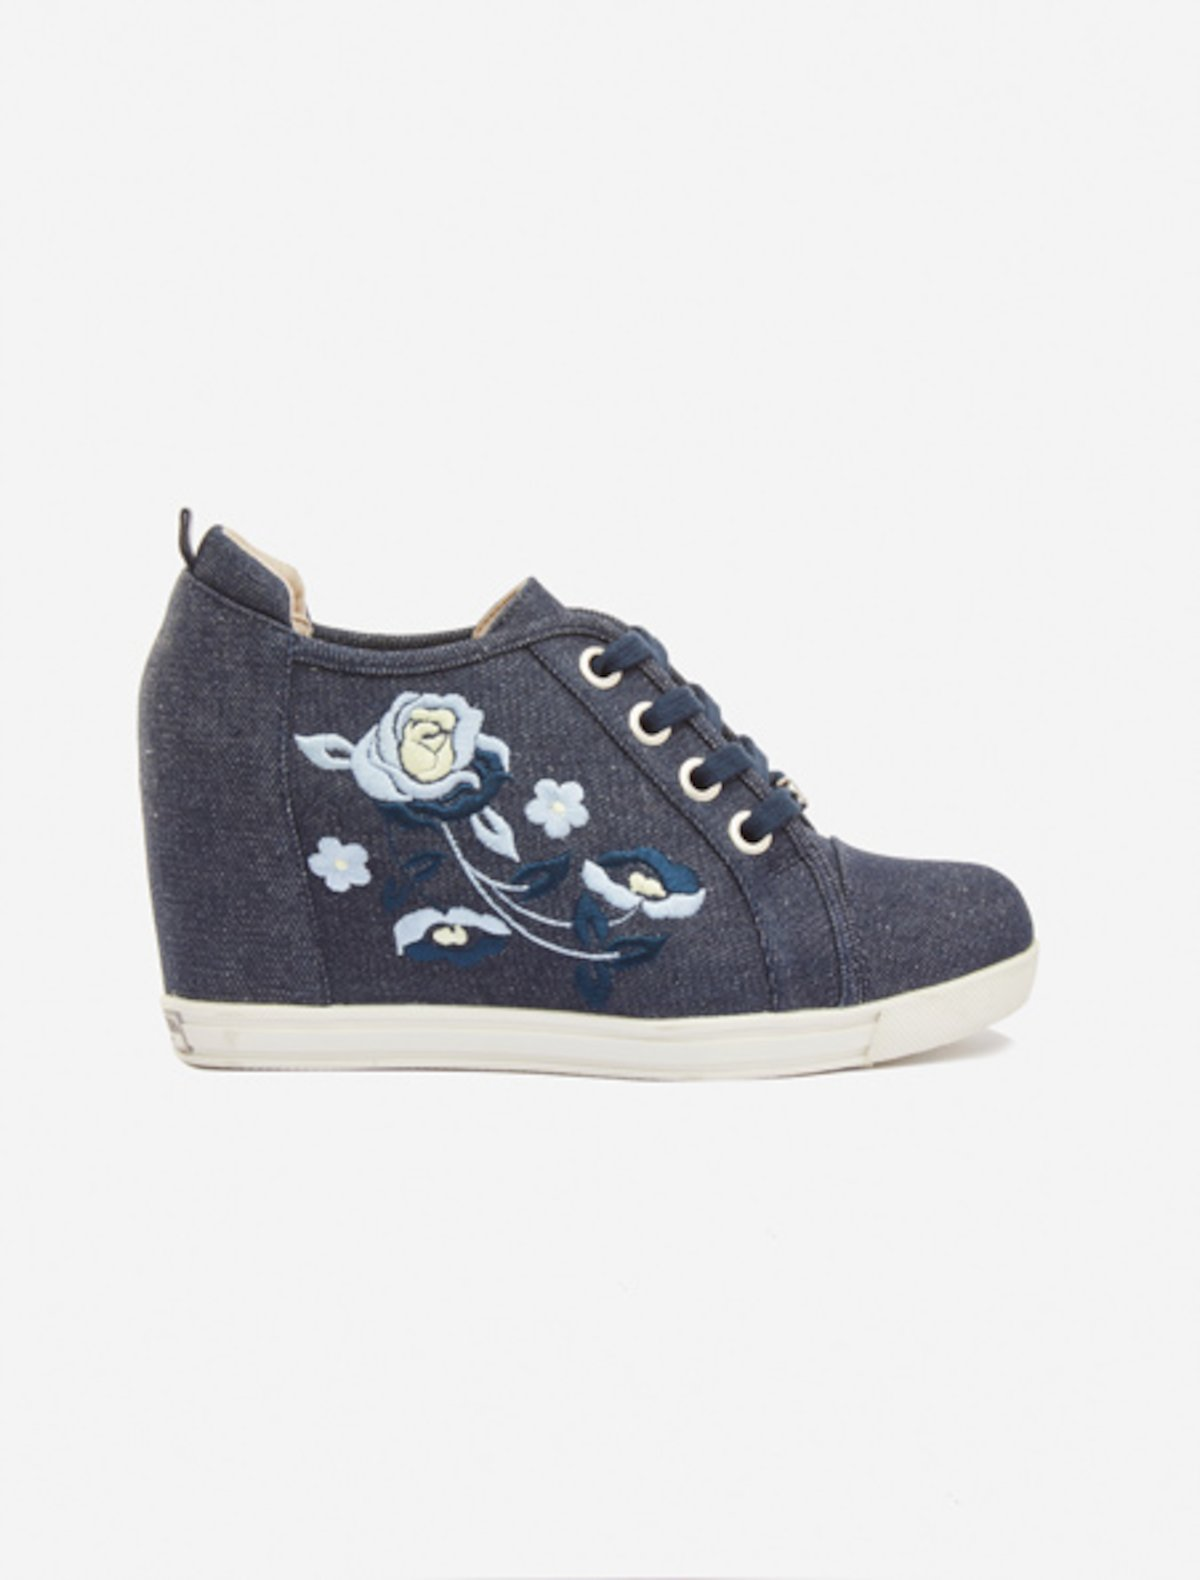 Samantha floral embroidery denim shoes